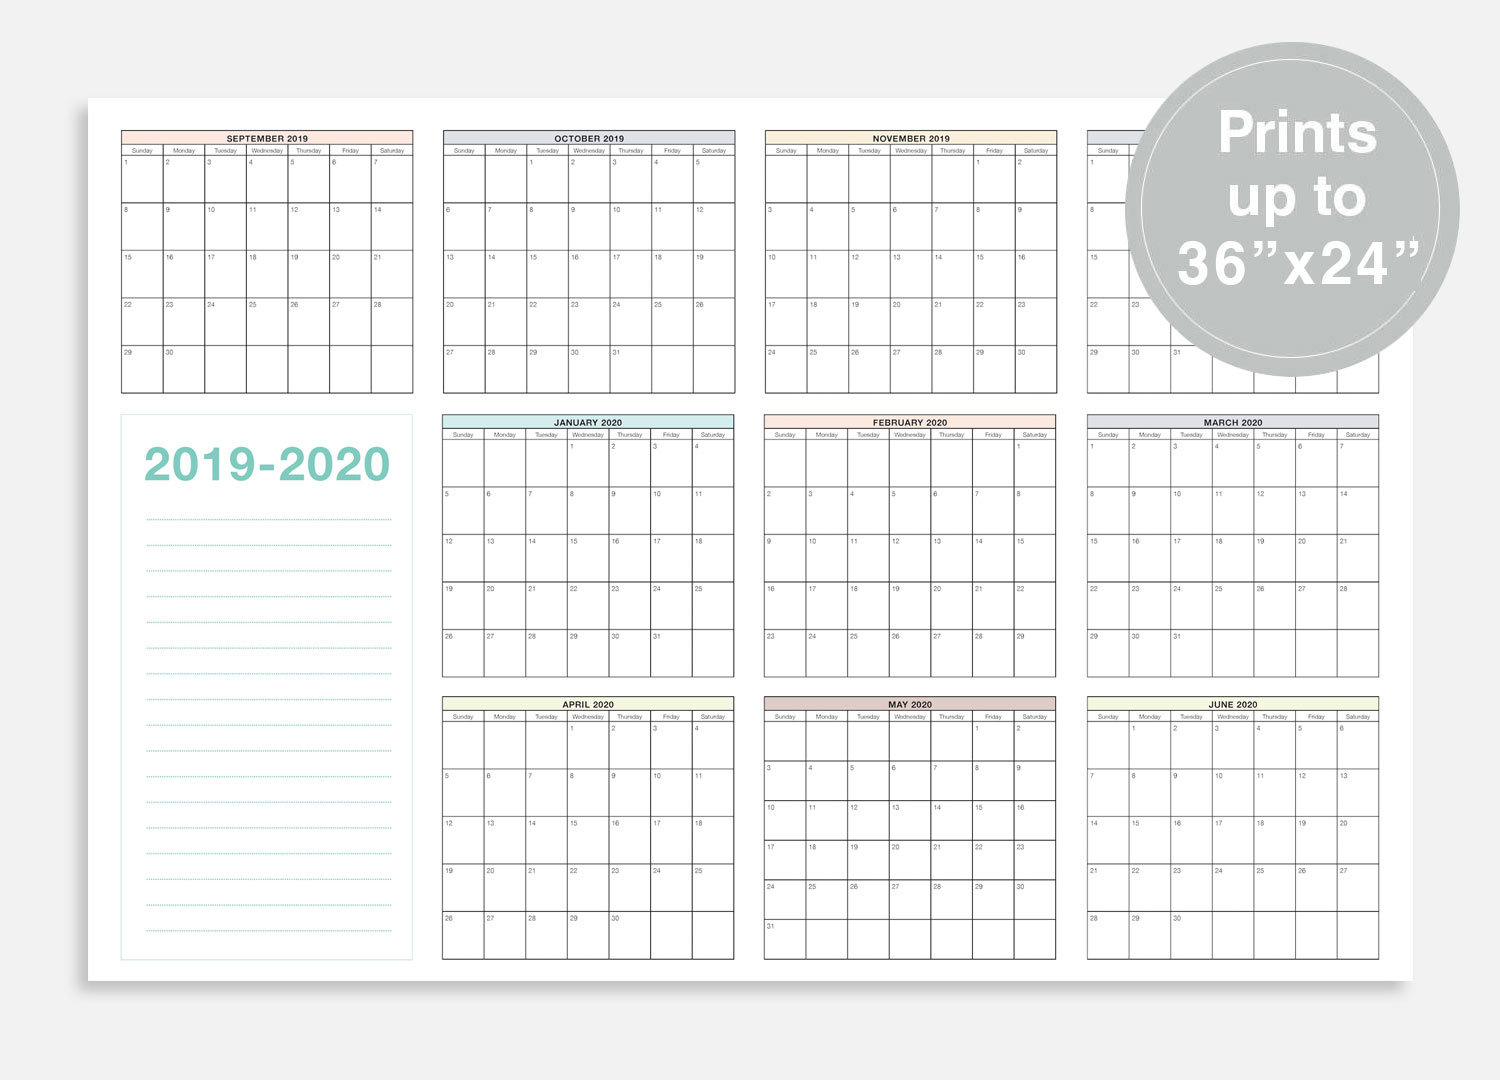 2019-2020 School Calendar September 2019 June 2020 School